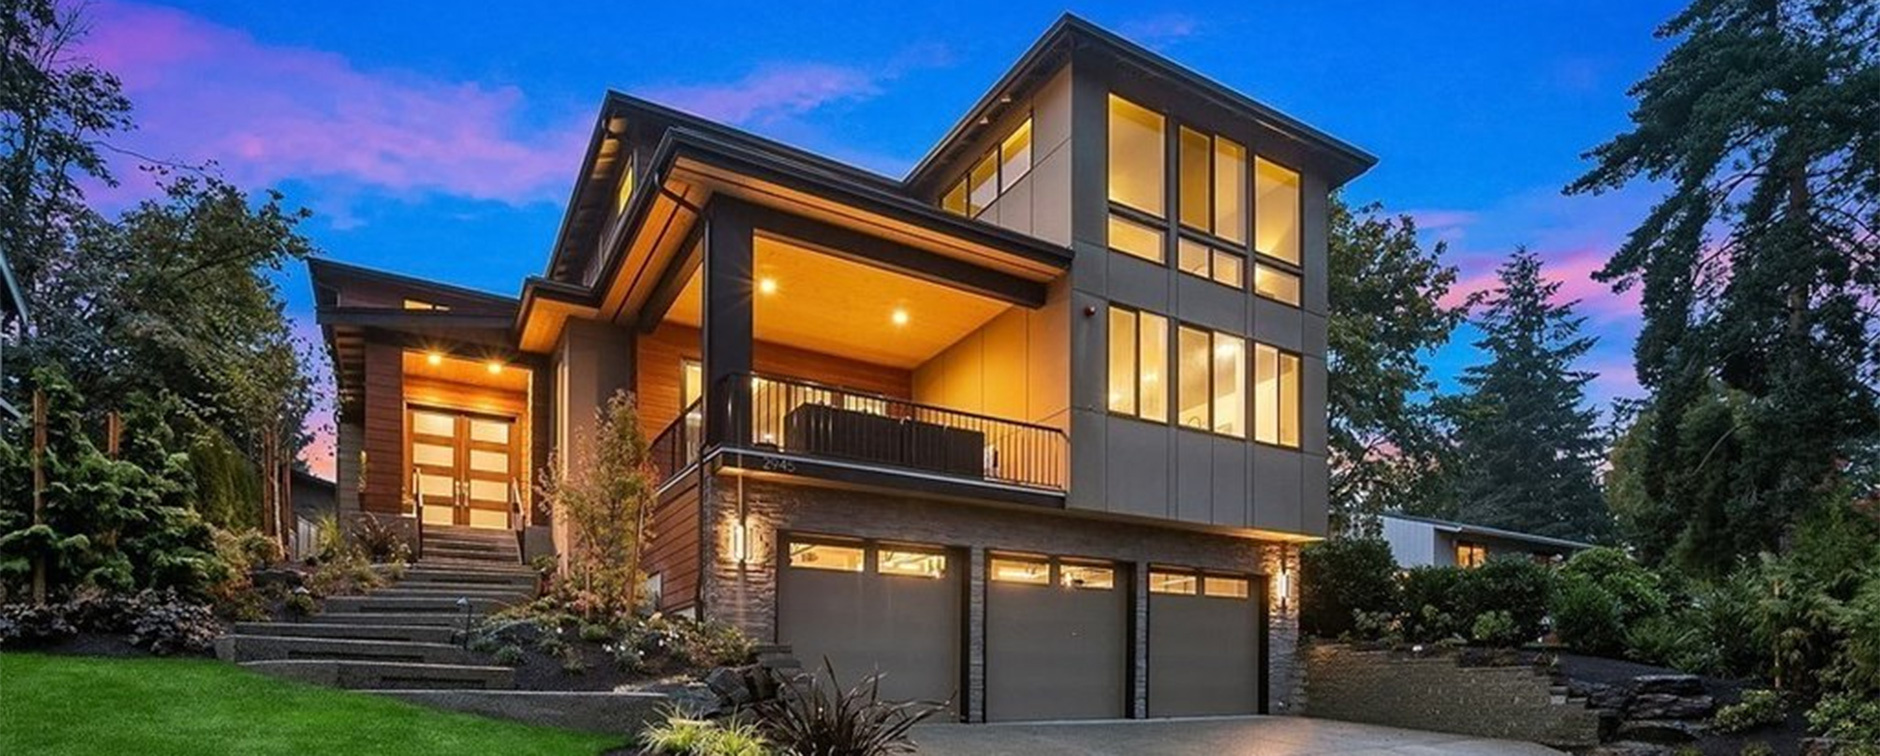 Build Up, Not Out. Browse 2 Story House Plans